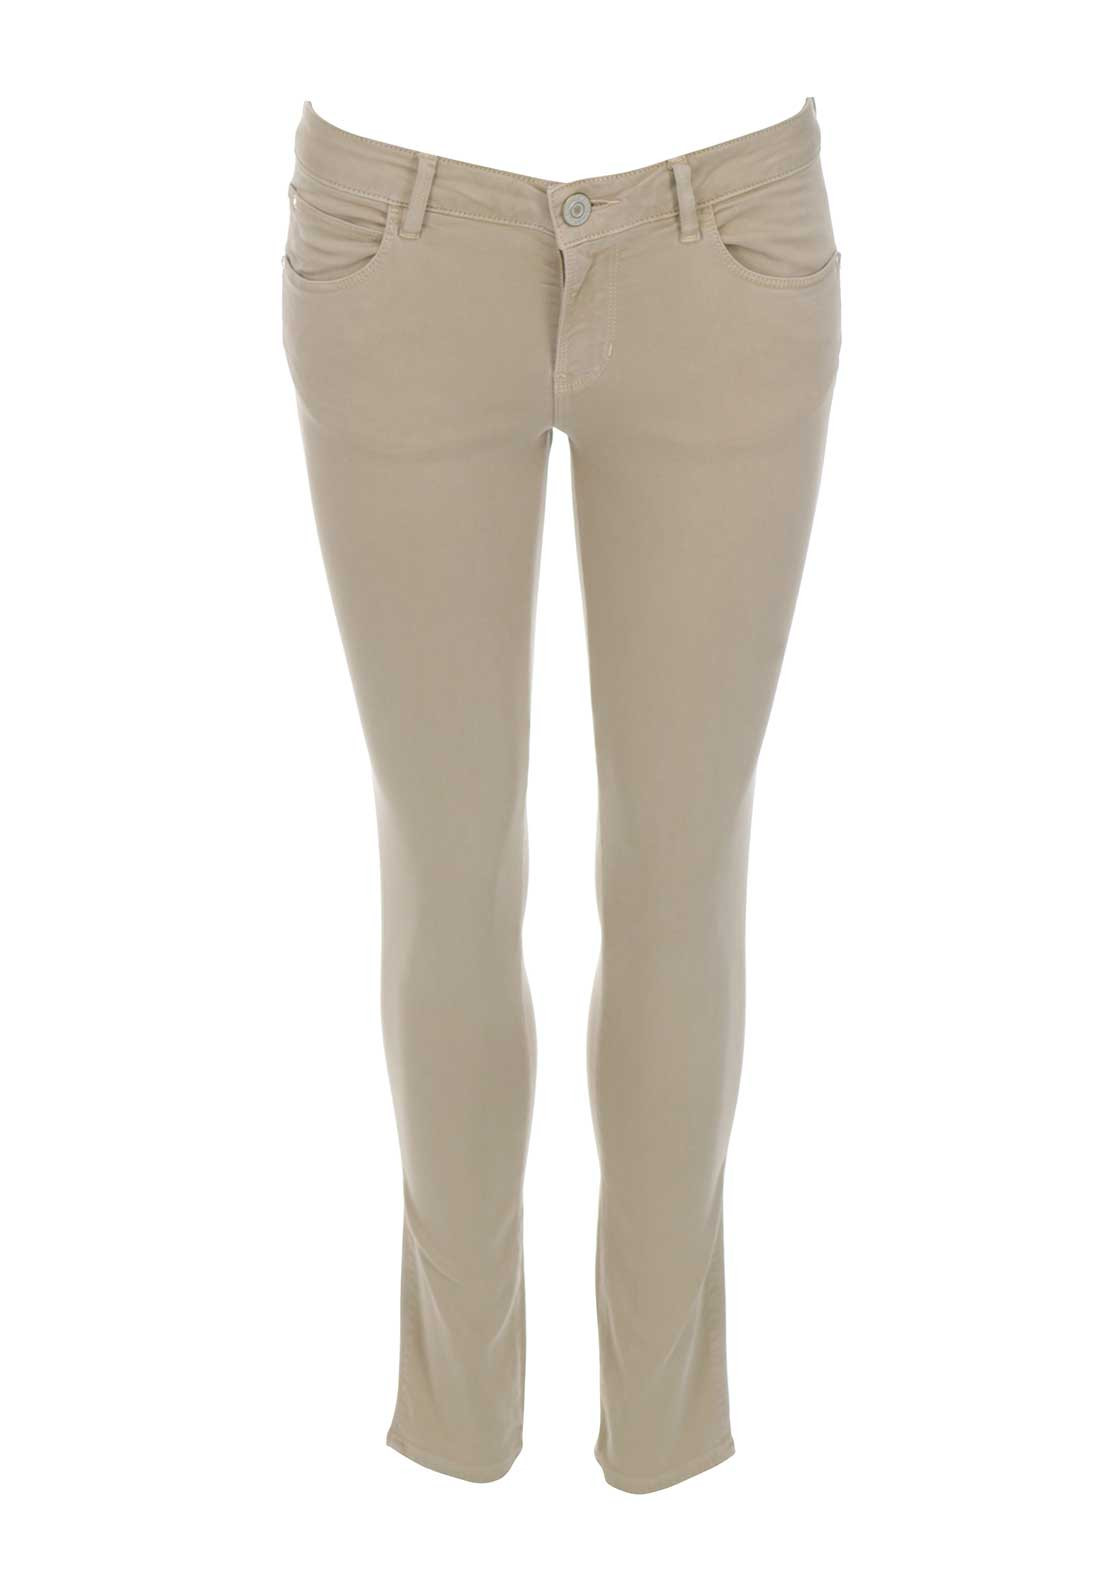 Guess Womens Curve Skinny Jeans, Beige